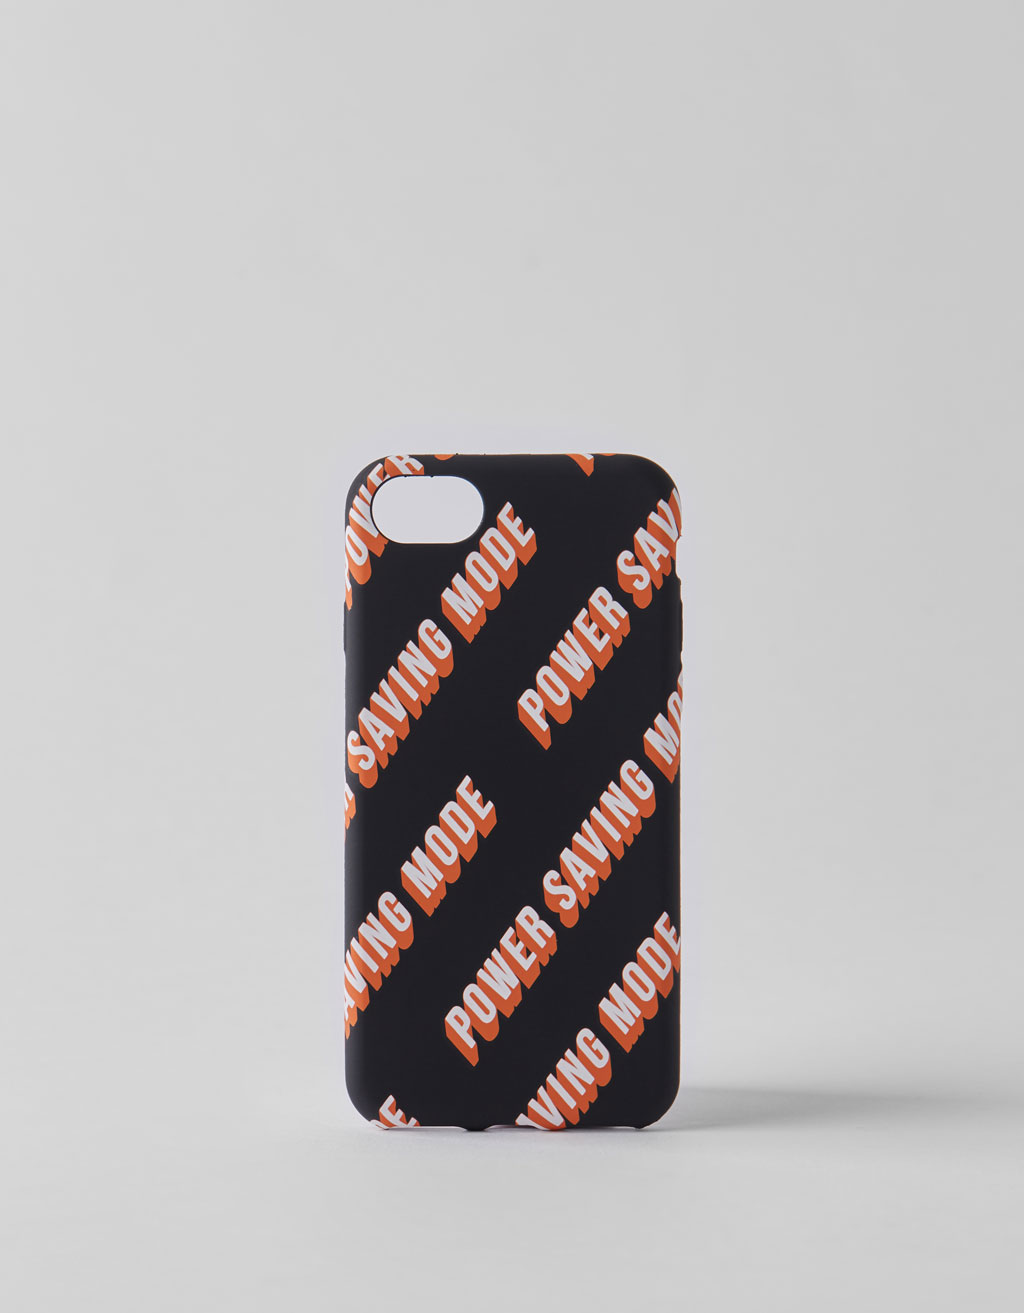 Printed iPhone 6 / 7 / 8 case